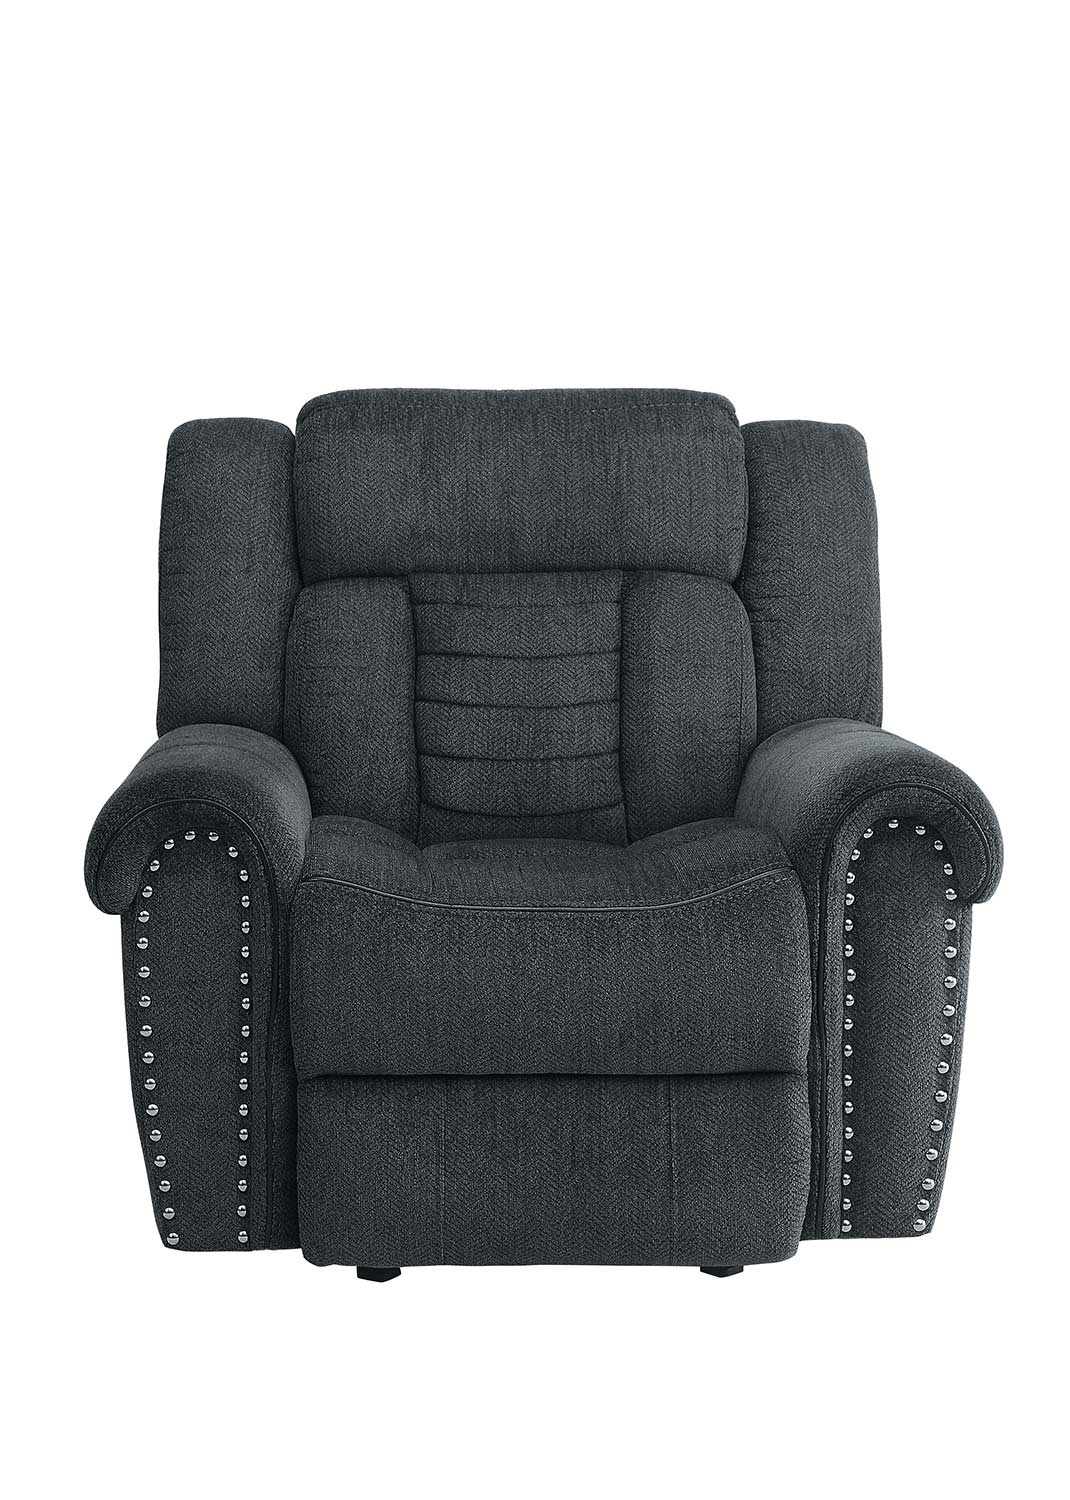 Homelegance Nutmeg Charcoal Glider Reclining Chair